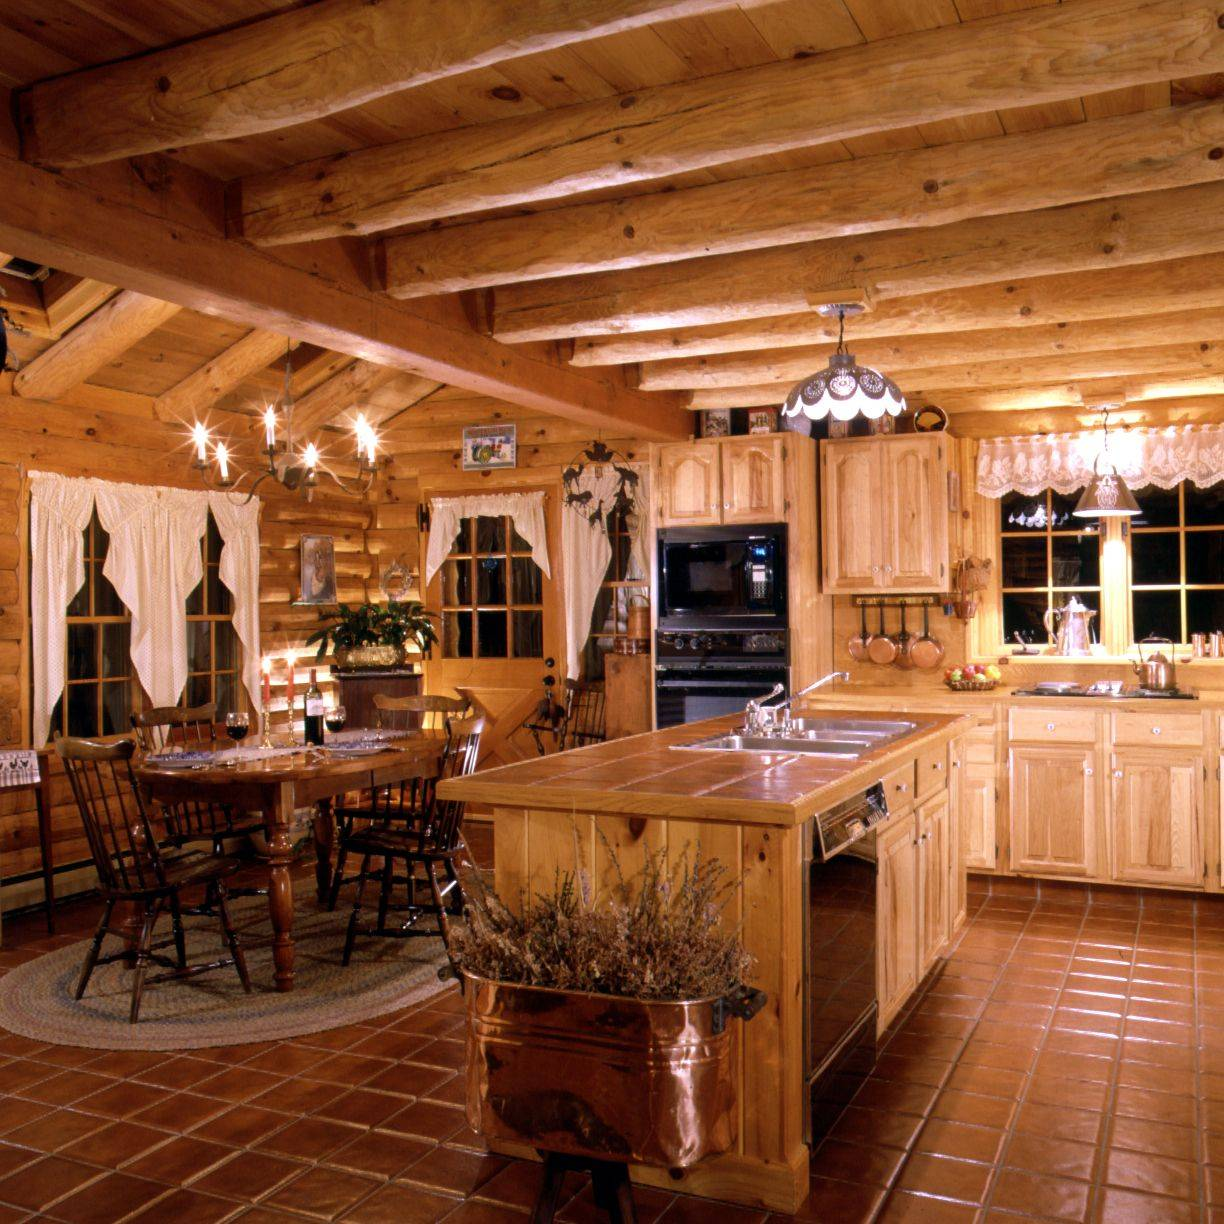 Log Home Kitchen Warmth Tiles Island Counter